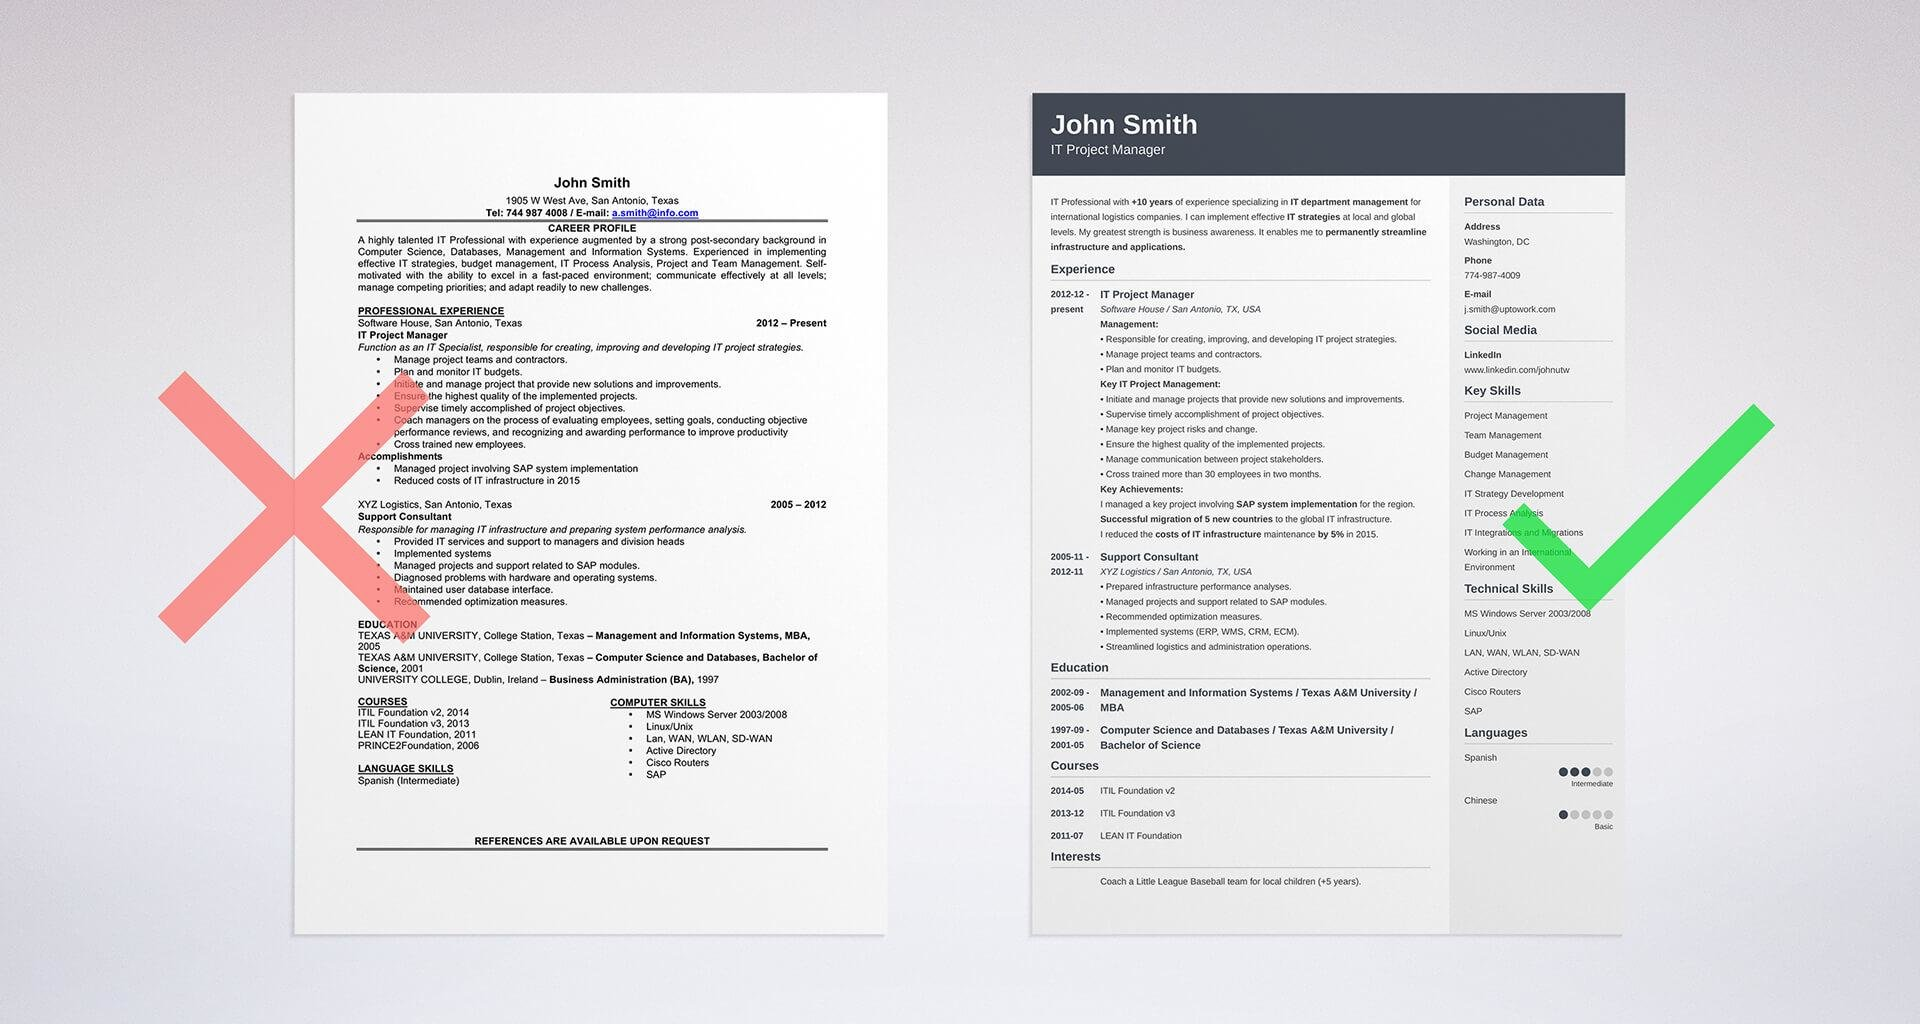 resume formatting word or pdf - Resume Formating